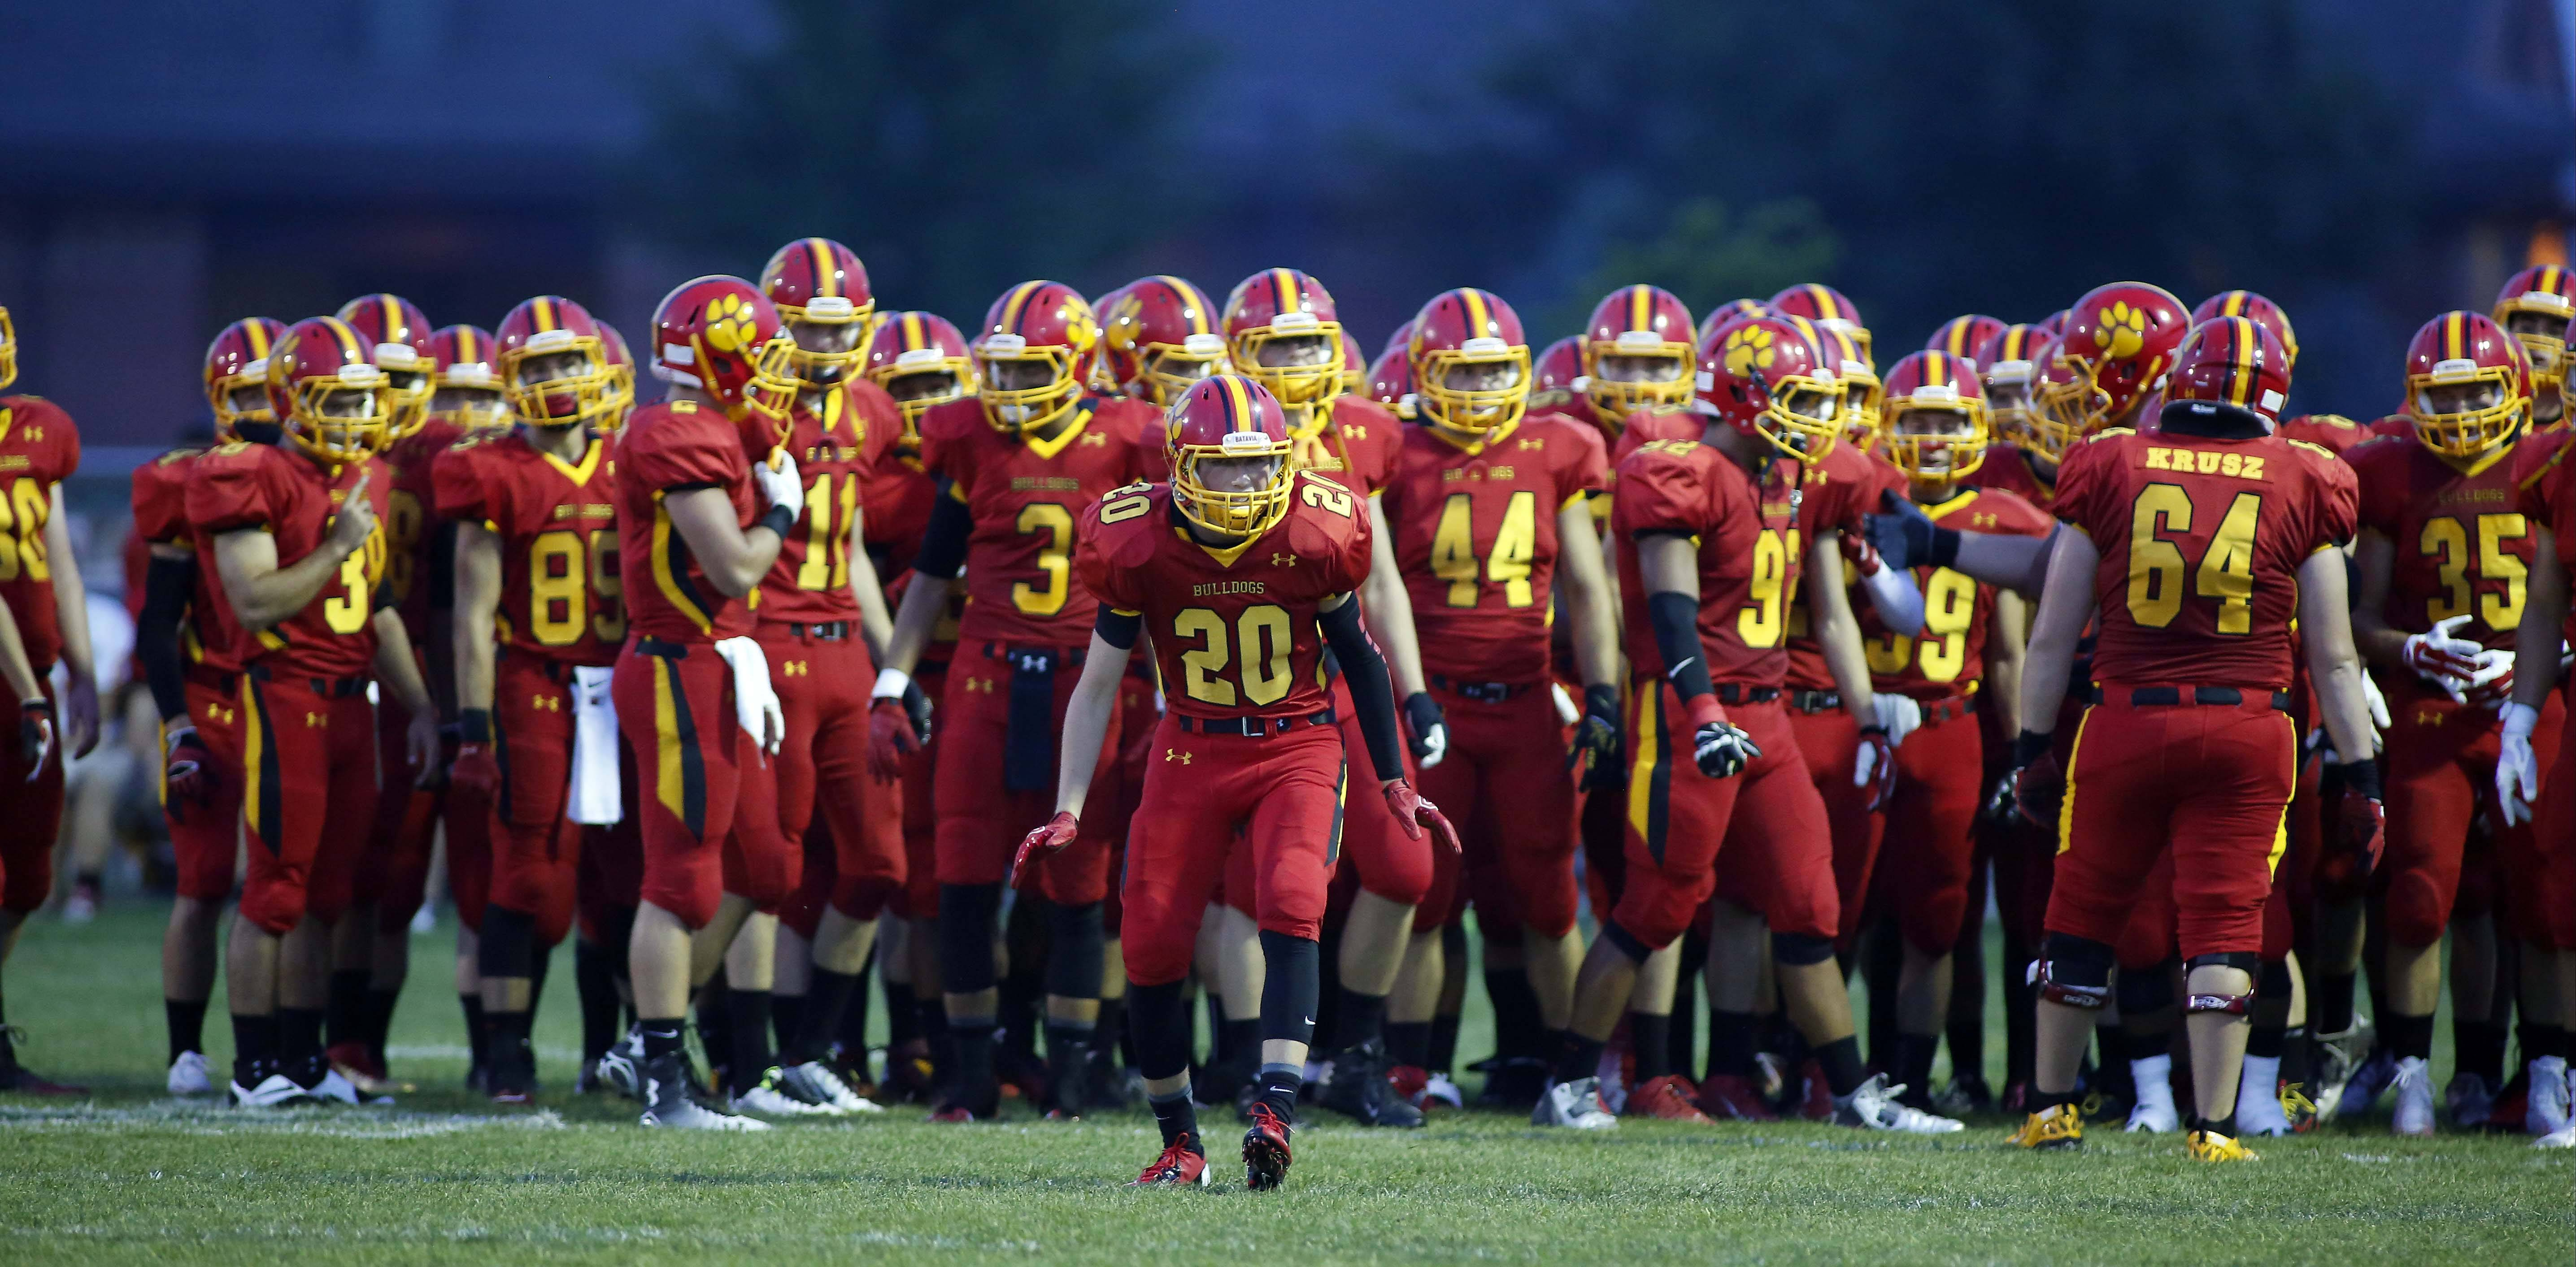 Week -1- Photos from the Oswego at Batavia football game on Friday, Aug. 29 in Batavia.